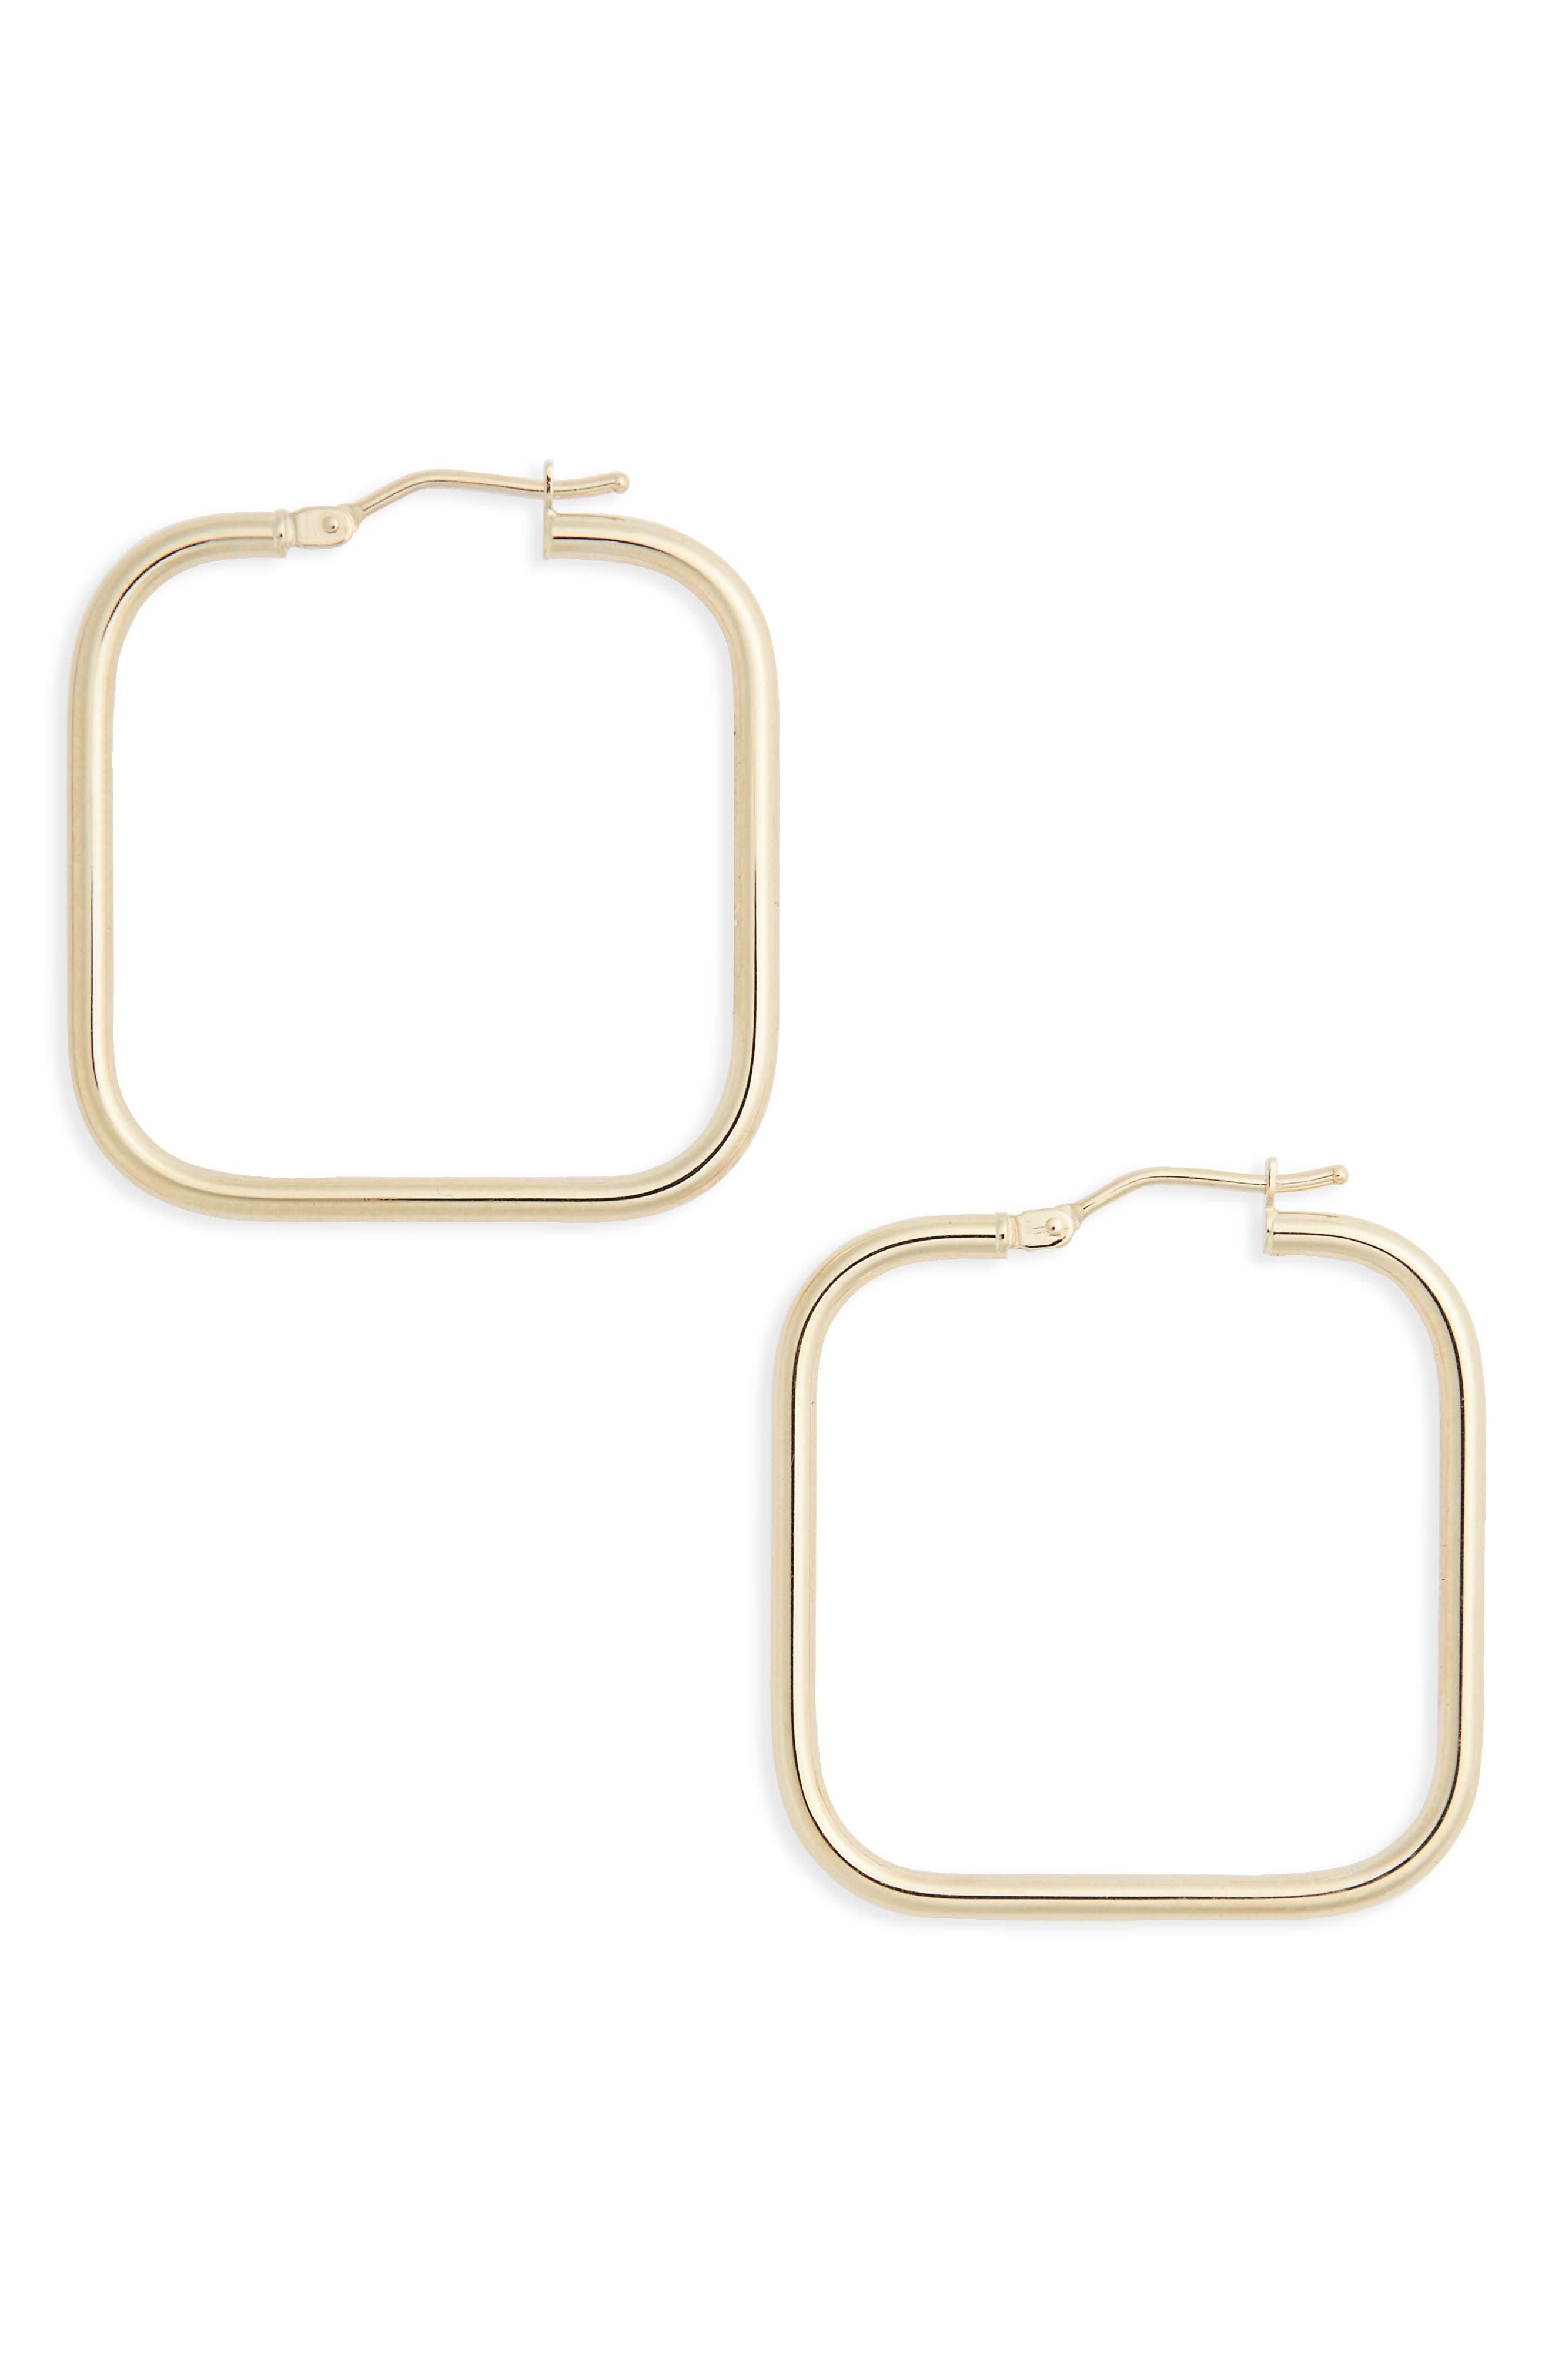 Square Hoop Earrings,                         Main,                         color, YELLOW GOLD